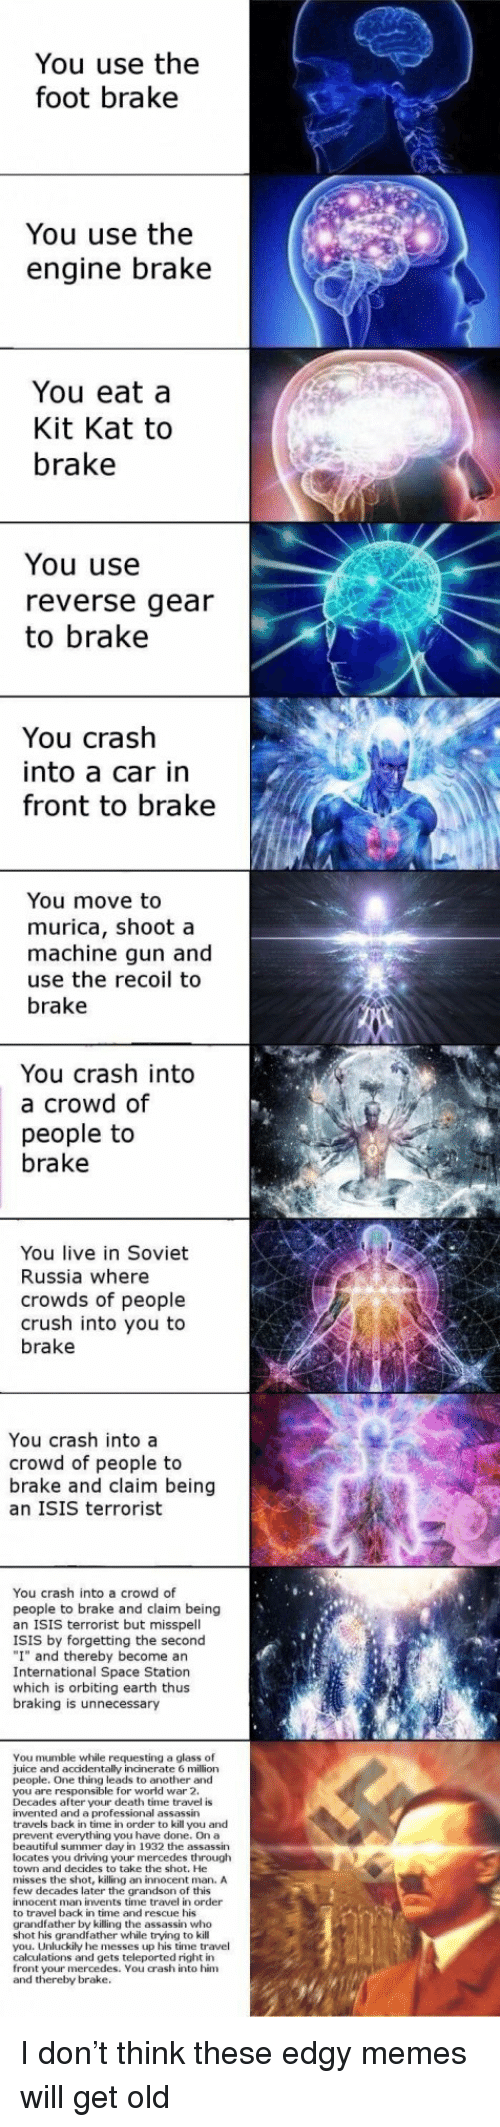 "soviet russia: You use the  foot brake  You use the  engine brake  You eat a  Kit Kat to  brake  You use  reverse gear  to brake  You crash  into a car in  front to brake  You move to  murica, shoot a  machine gun and  use the recoil to  brake  You crash into  a crowd of  people to  brake  You live in Soviet  Russia where  crowds of people  crush into you to  brake  You crash into a  crowd of people to  brake and claim being  an ISIS terrorist  You crash into a crowd of  people to brake and claim being  an ISIS terrorist but misspell  ISIS by forgetting the second  ""I"" and thereby become an  International Space Station  which is orbiting earth thus  braking is unnecessary  You mumble while requesting a glass of  juice and accidentally incinerate 6 million  people. One thing leads to another and  you are responsible for world war 2  Decades after your death time travel is  invented and a professioalassassin  travels back in time in order to kill you and  prevent everything you have done. On a  beautiful summer day in 1932 the assassin  locates you driving your mercedes through  town and decides to take the shot. He  misses the shot, killing an innocent man, A  few decades later the grandson of this  innocent man invents time travel in order  to travel back in time and rescue his  grandfather by killing the assassin who  shot his grandfather while trying to kill  you. Unluckily he messes up his time travel  calculations and gets teleported right in  front your mercedes. You crash into him  and thereby brake. <p>I don&rsquo;t think these edgy memes will get old</p>"